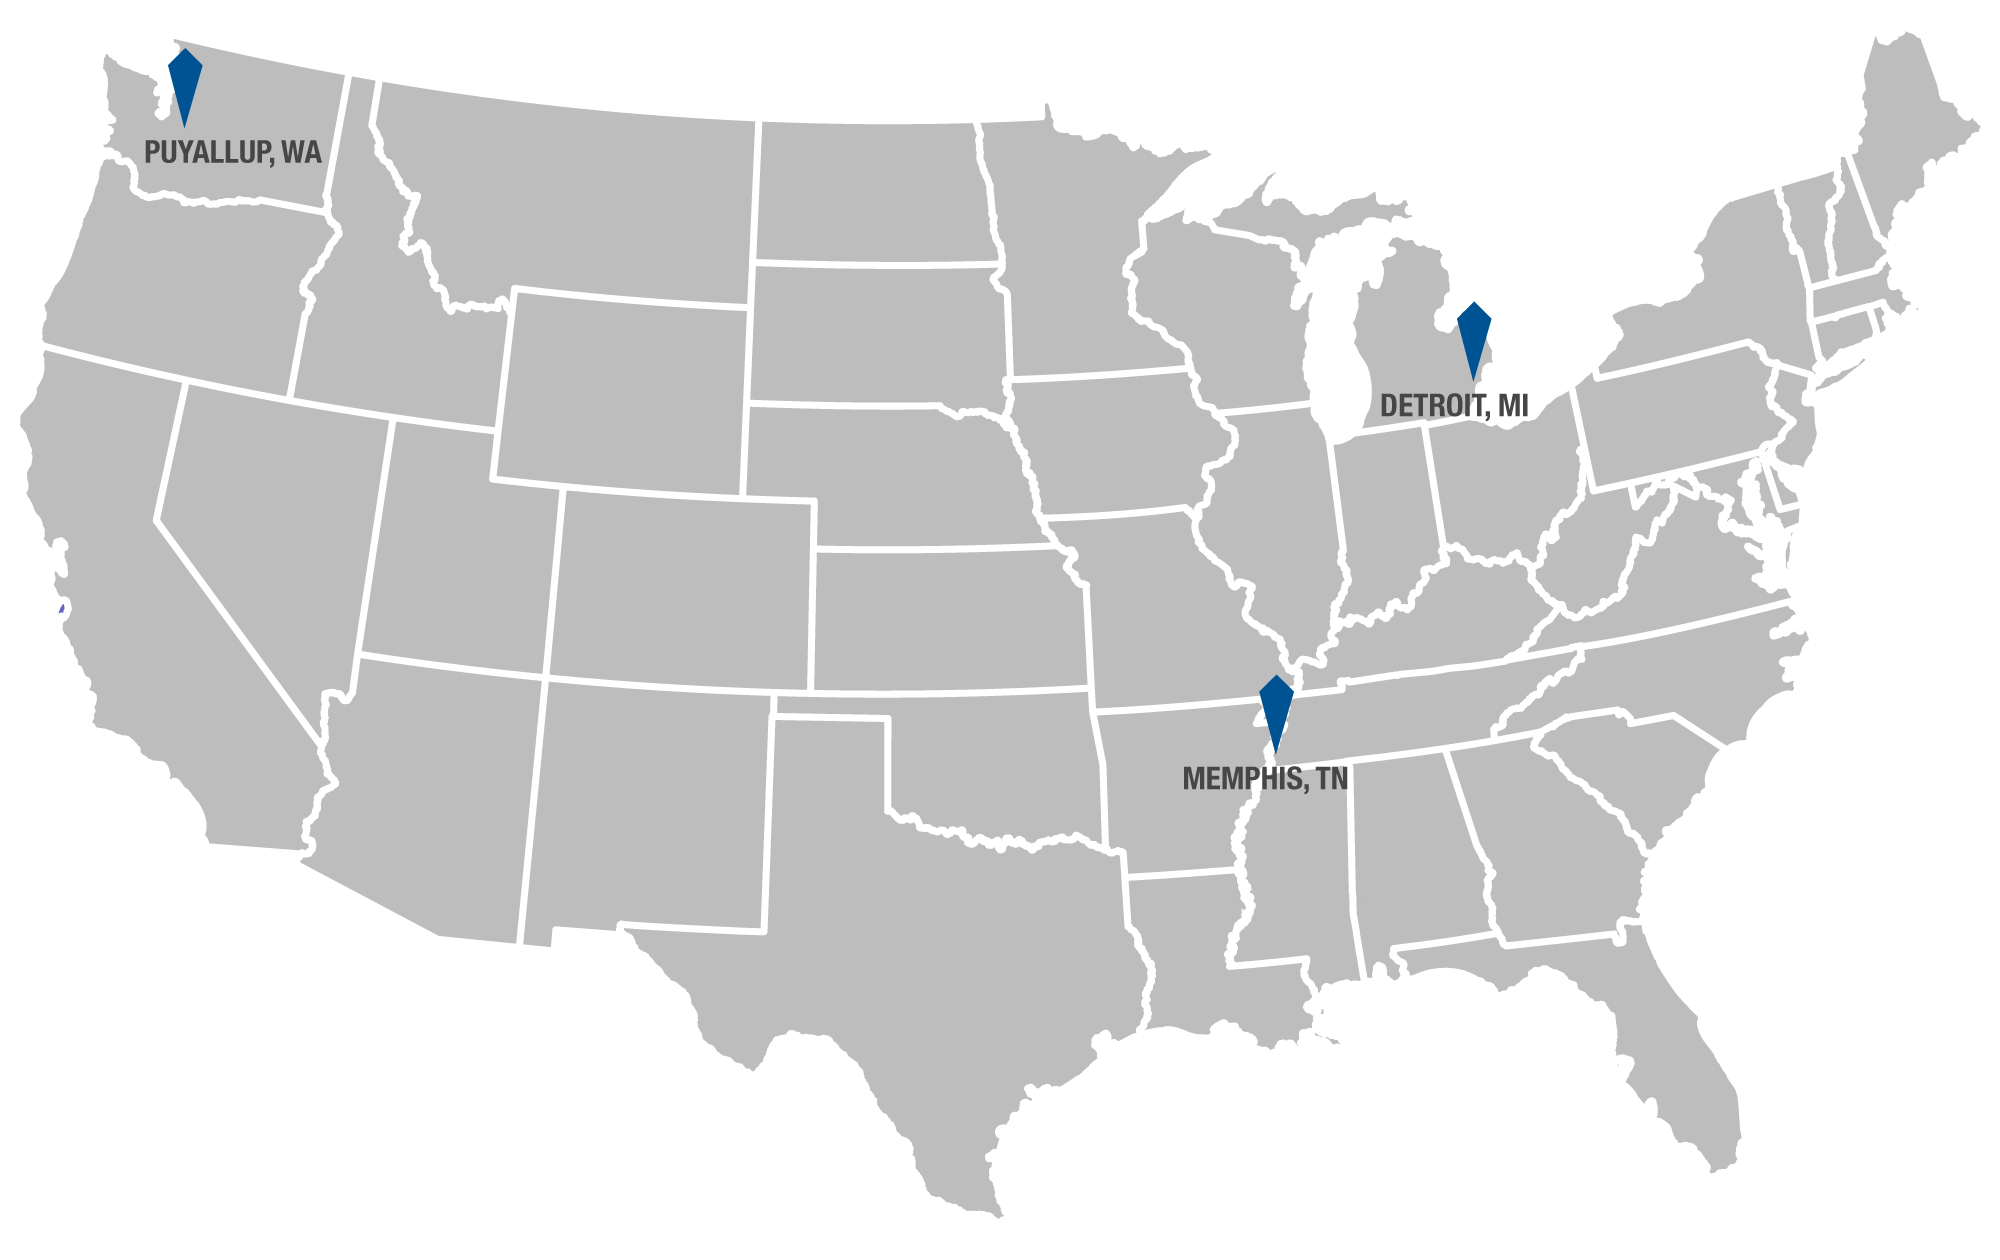 Hydraulex - Nationwide Workplace - With 4 locations in the U.S.A - Grey Map